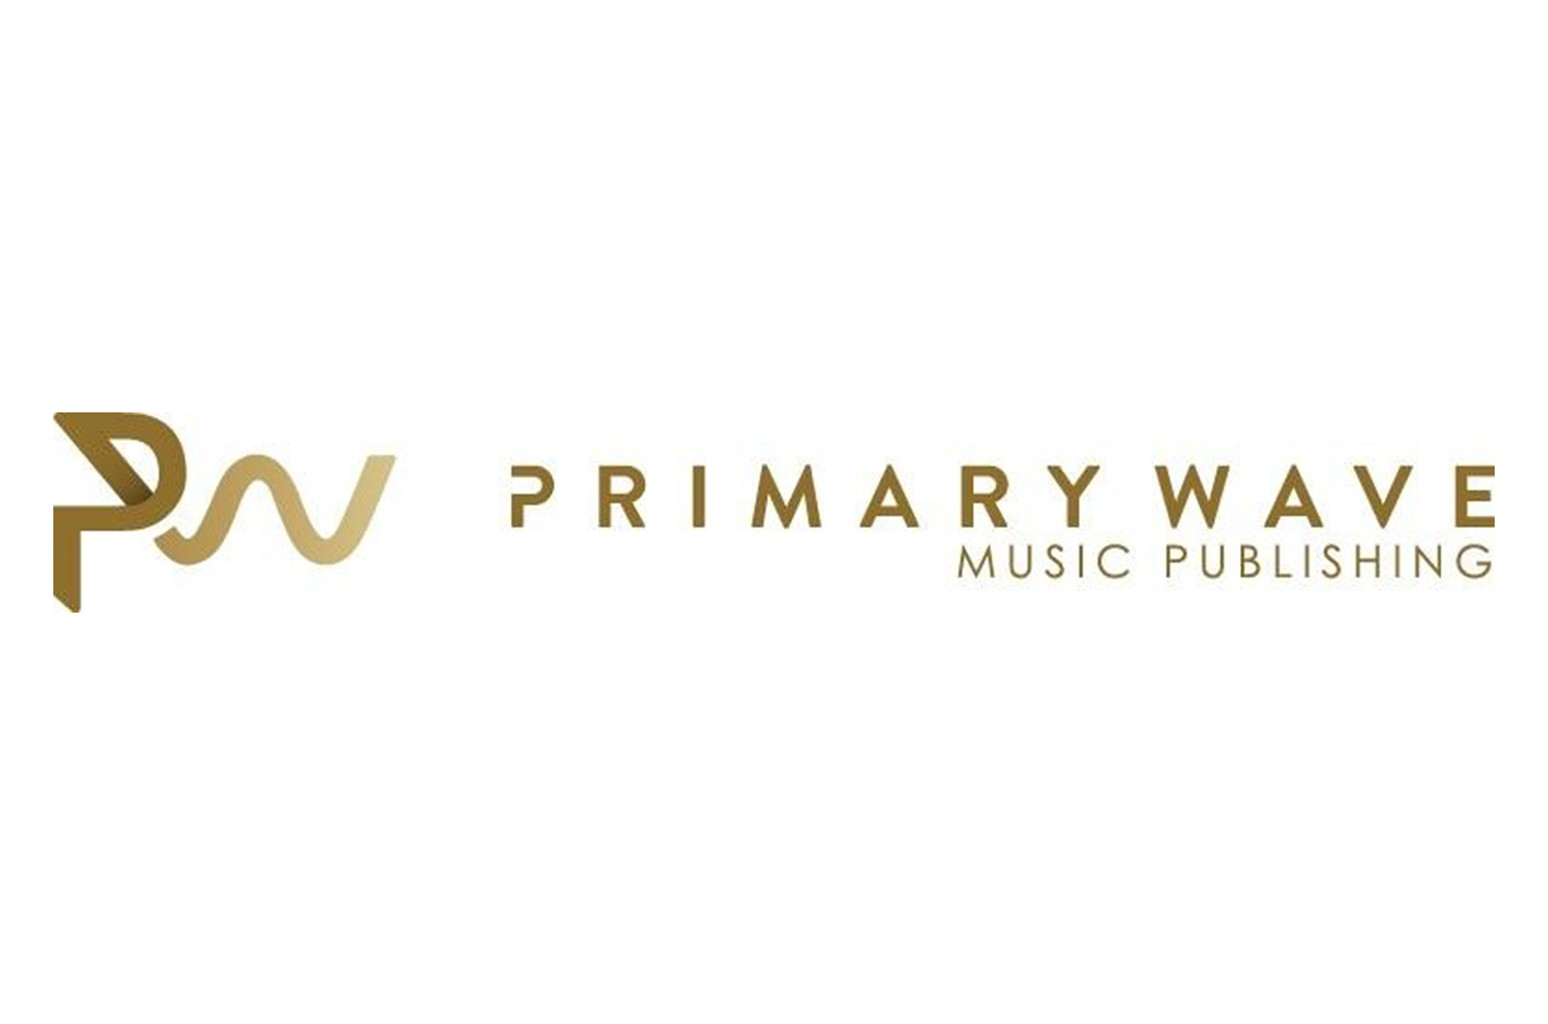 Primary Wave Music Publishing